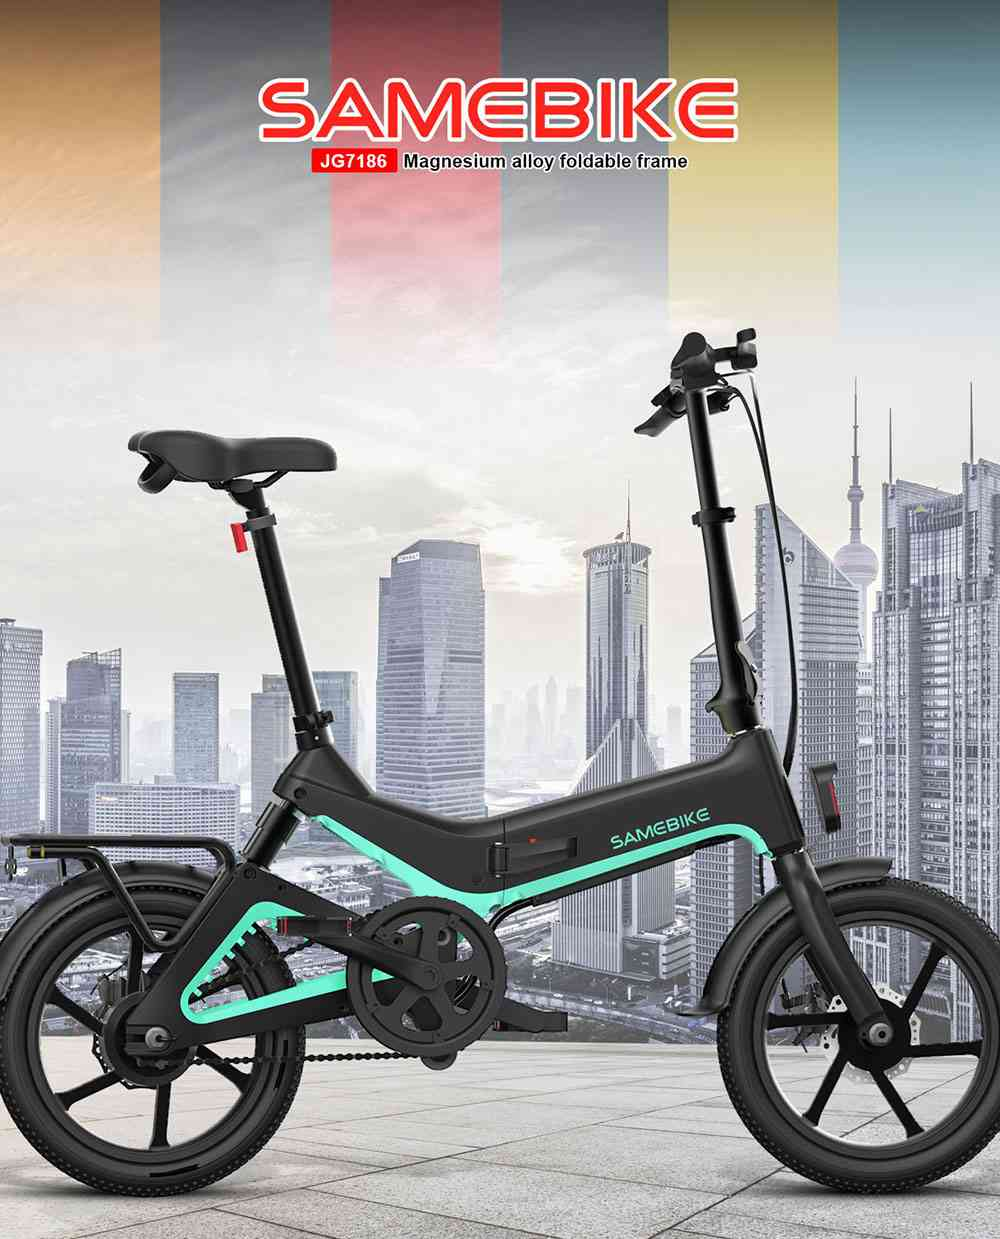 Samebike JG7186 Portable Folding Smart Electric Moped Bike 250W Motor Max 25km/h 16 Inch Tire - Gray